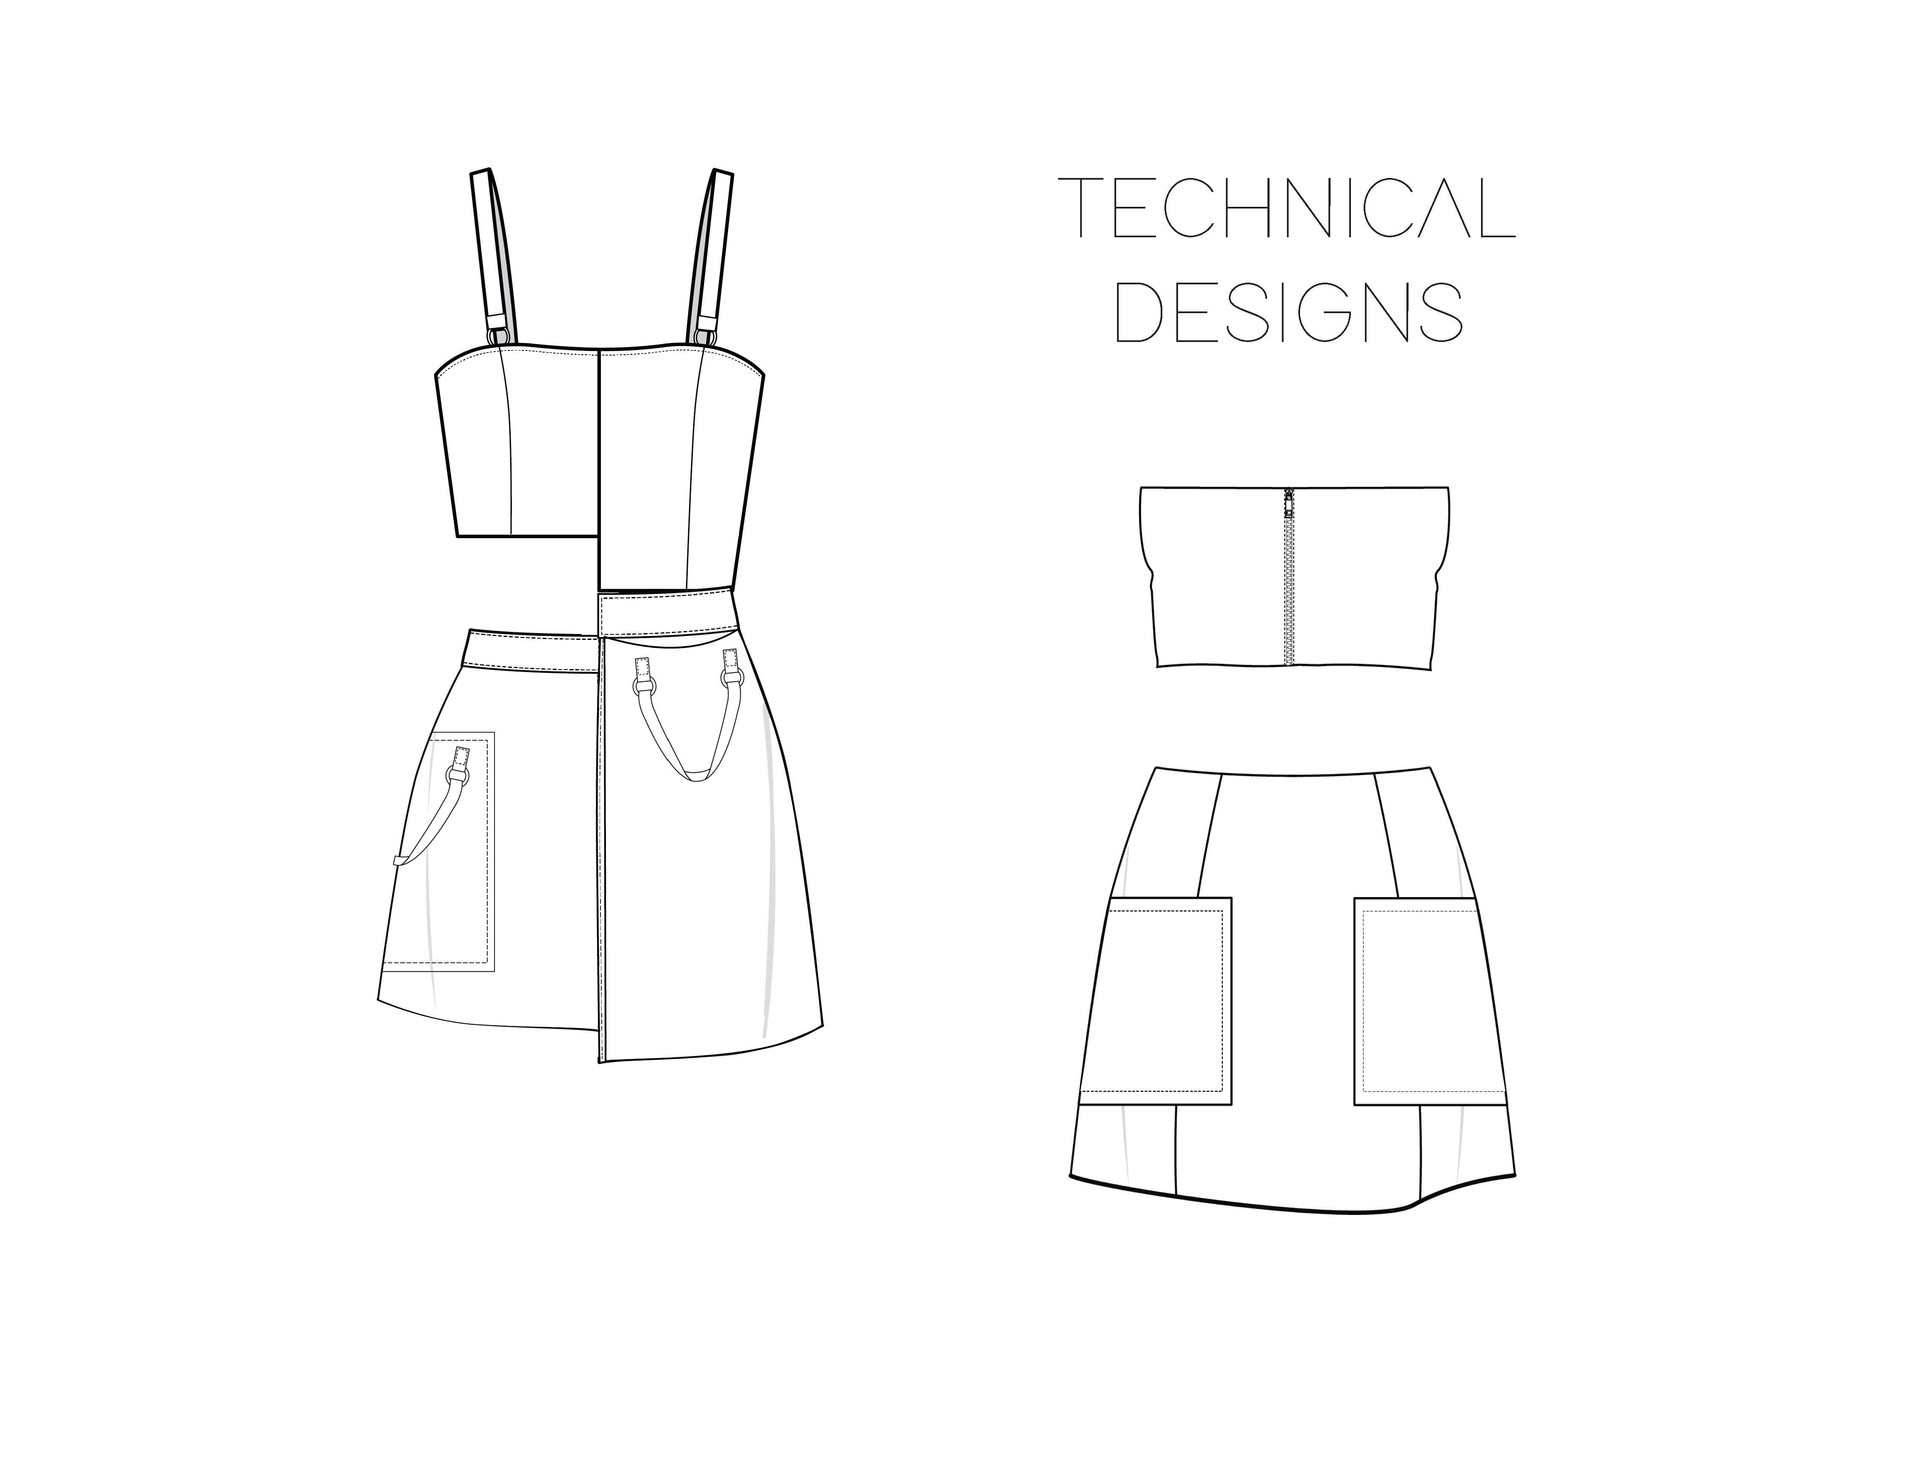 Piñatex technical drawings